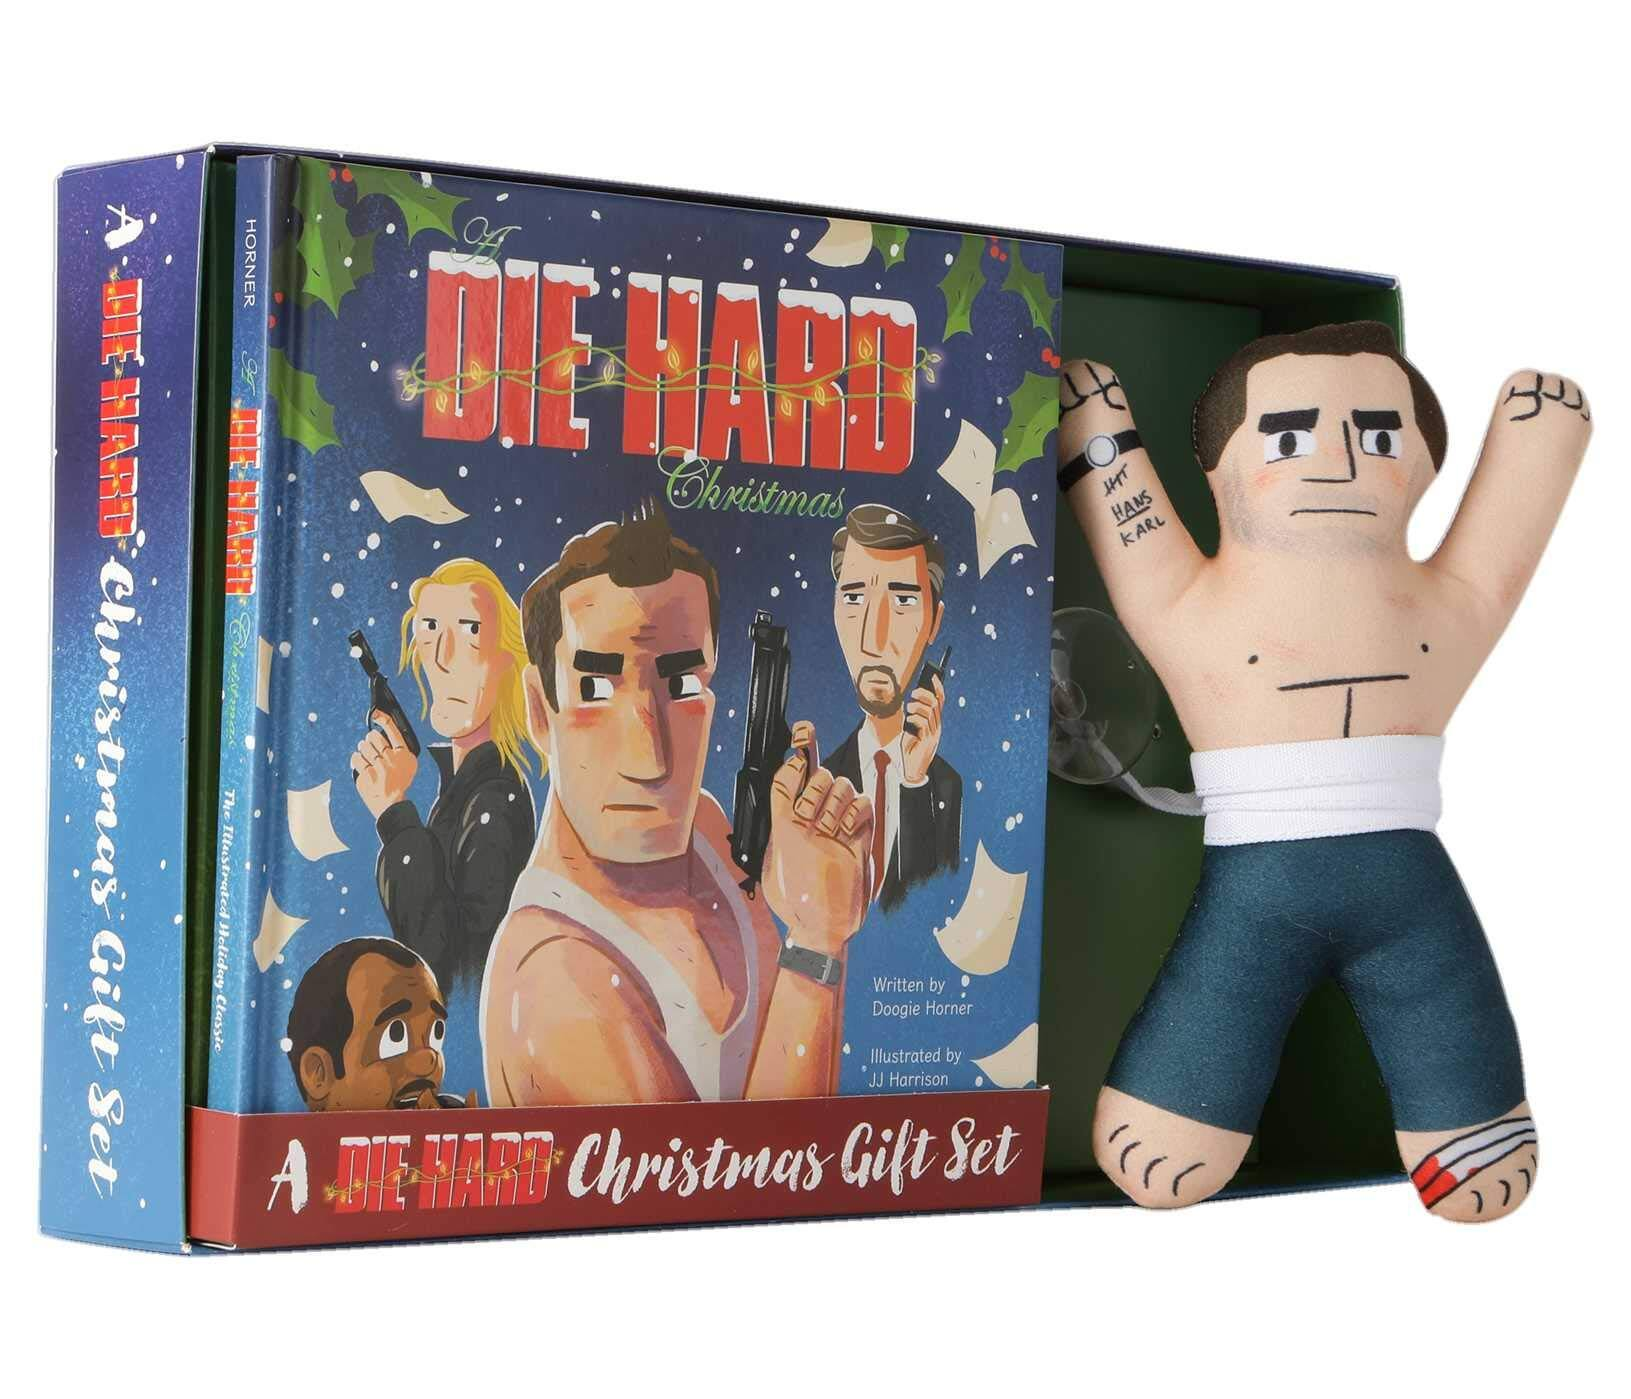 A Die Hard Christmas Gift Set (Hardcover) w/ Plush Toy